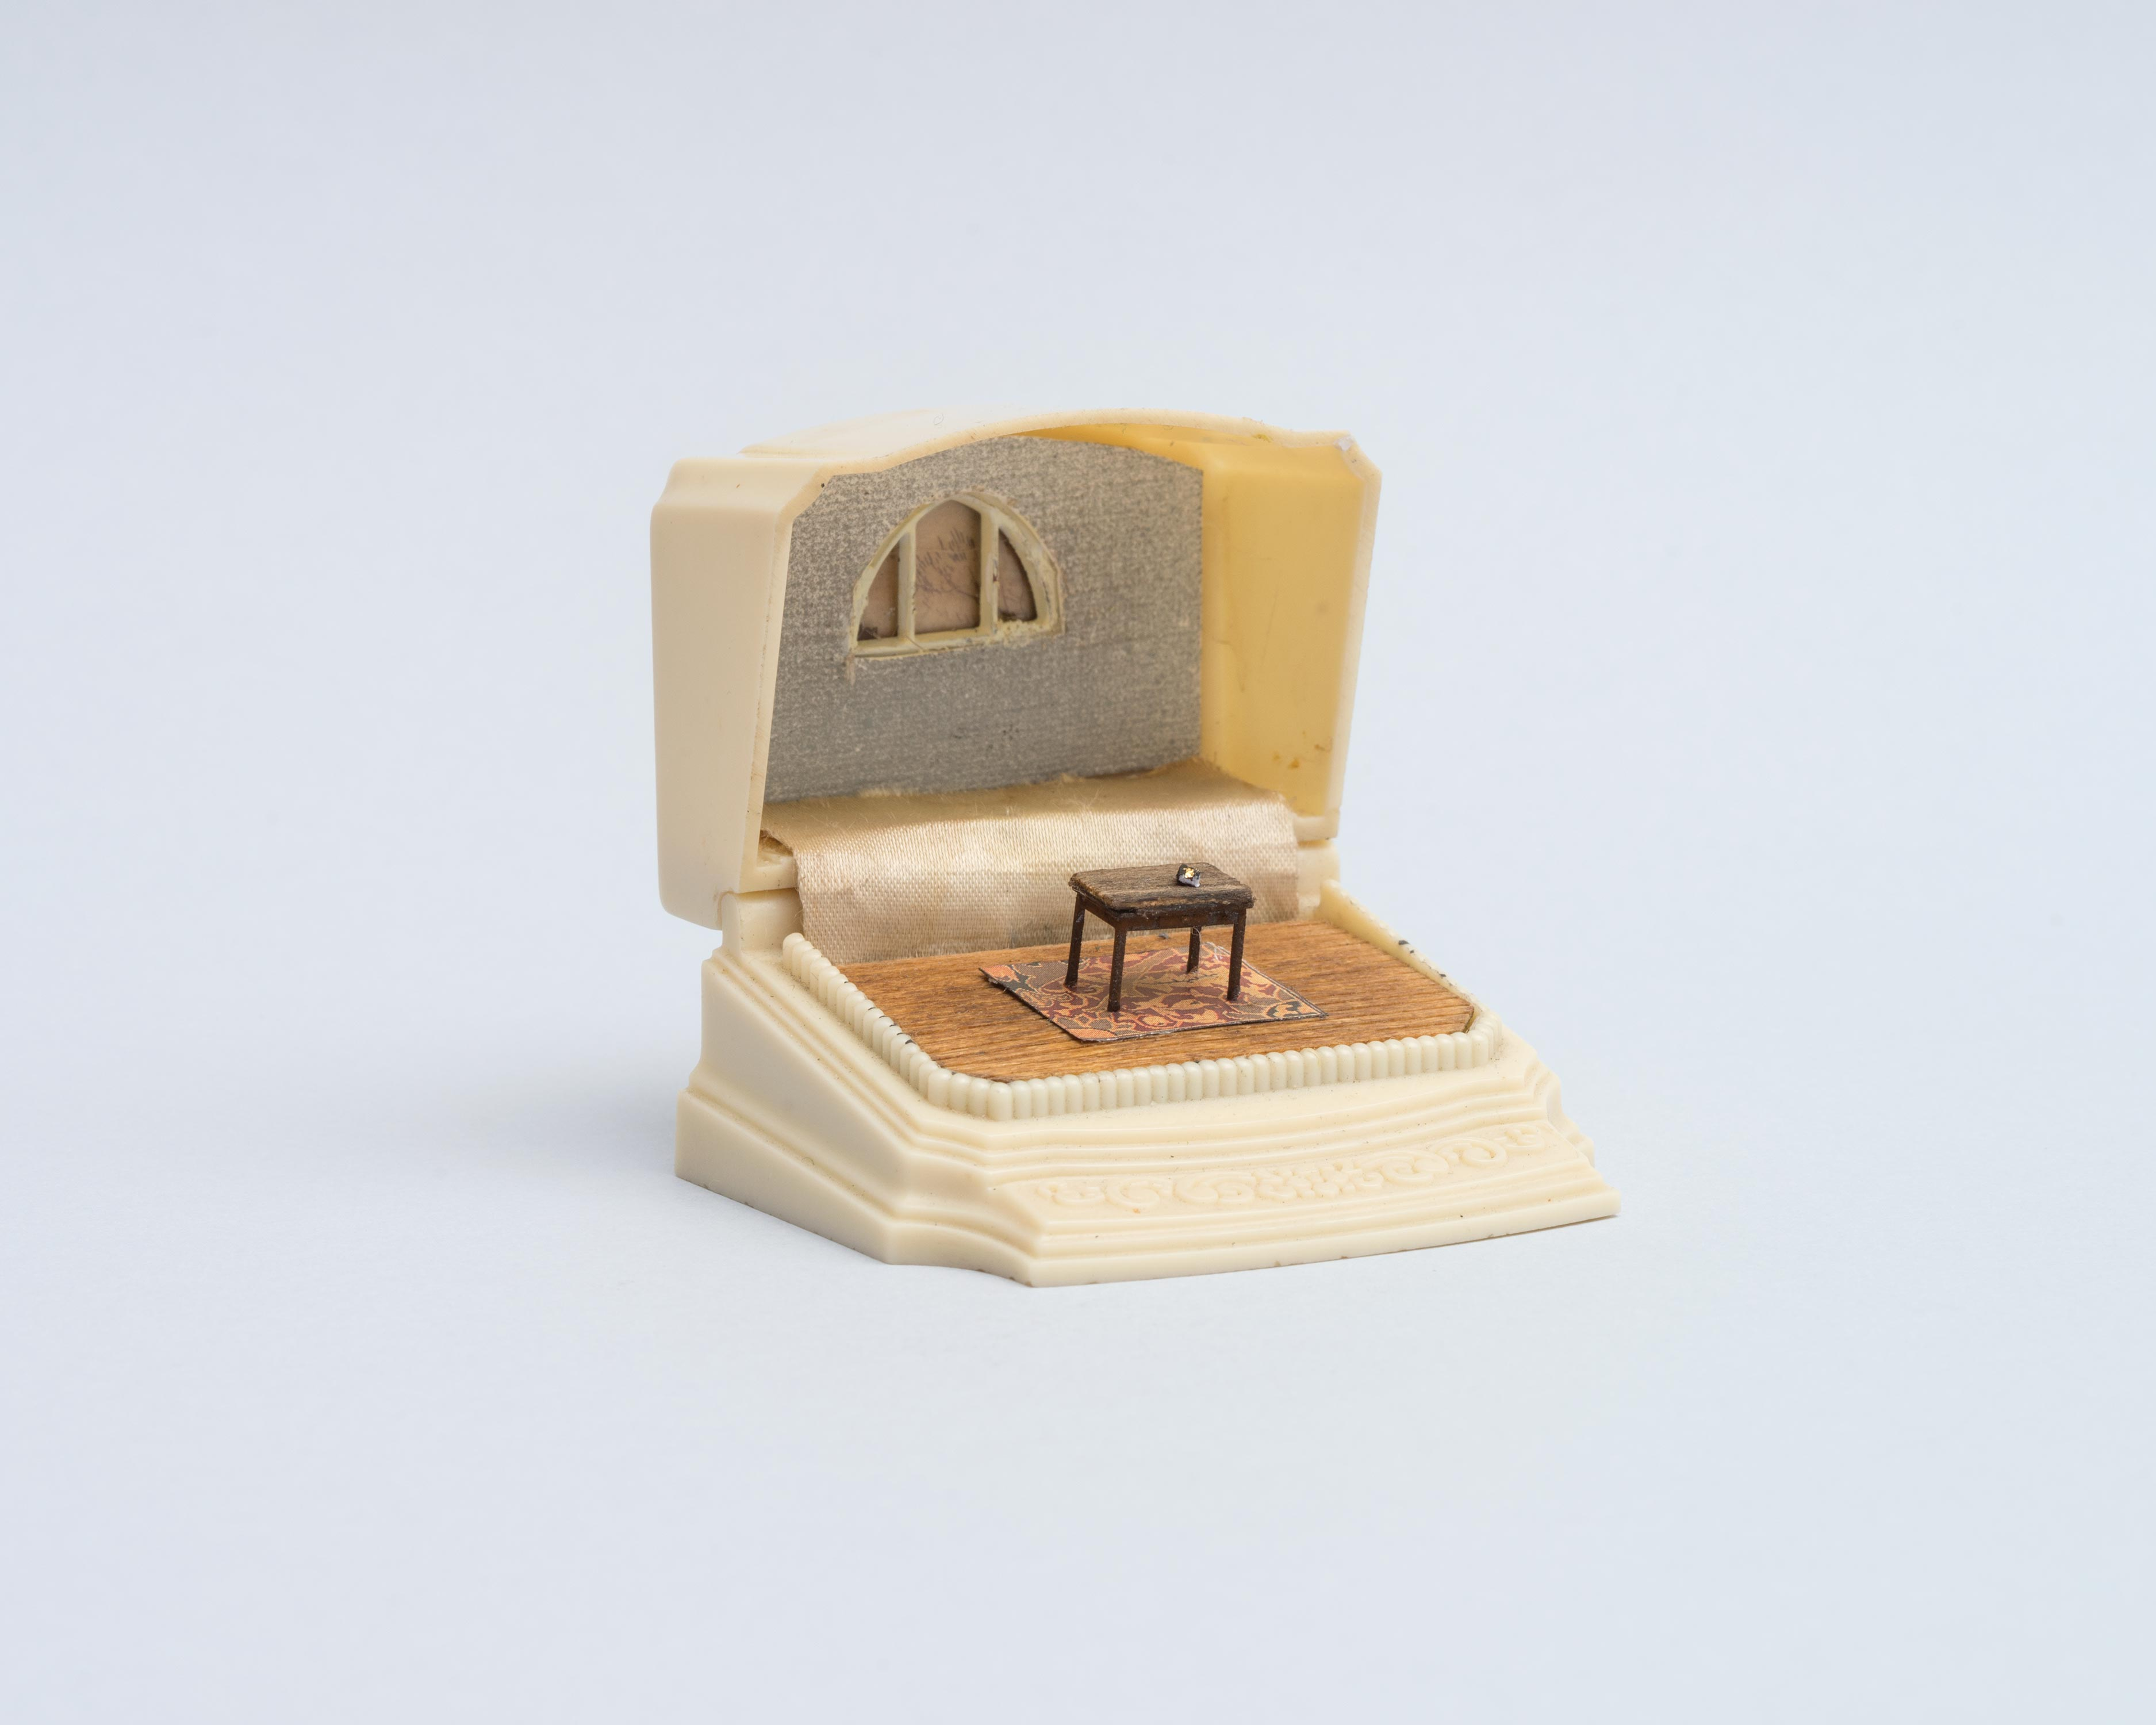 Curtis Talwst Santiago<br>1663 John Eliot's Algonquin (Native American Bible)<br>2016<br>Mixed media diorama in reclaimed jewelry box<br>2.625 x 2 x 2.5 in (6.7 x 5 x 6.4cm)